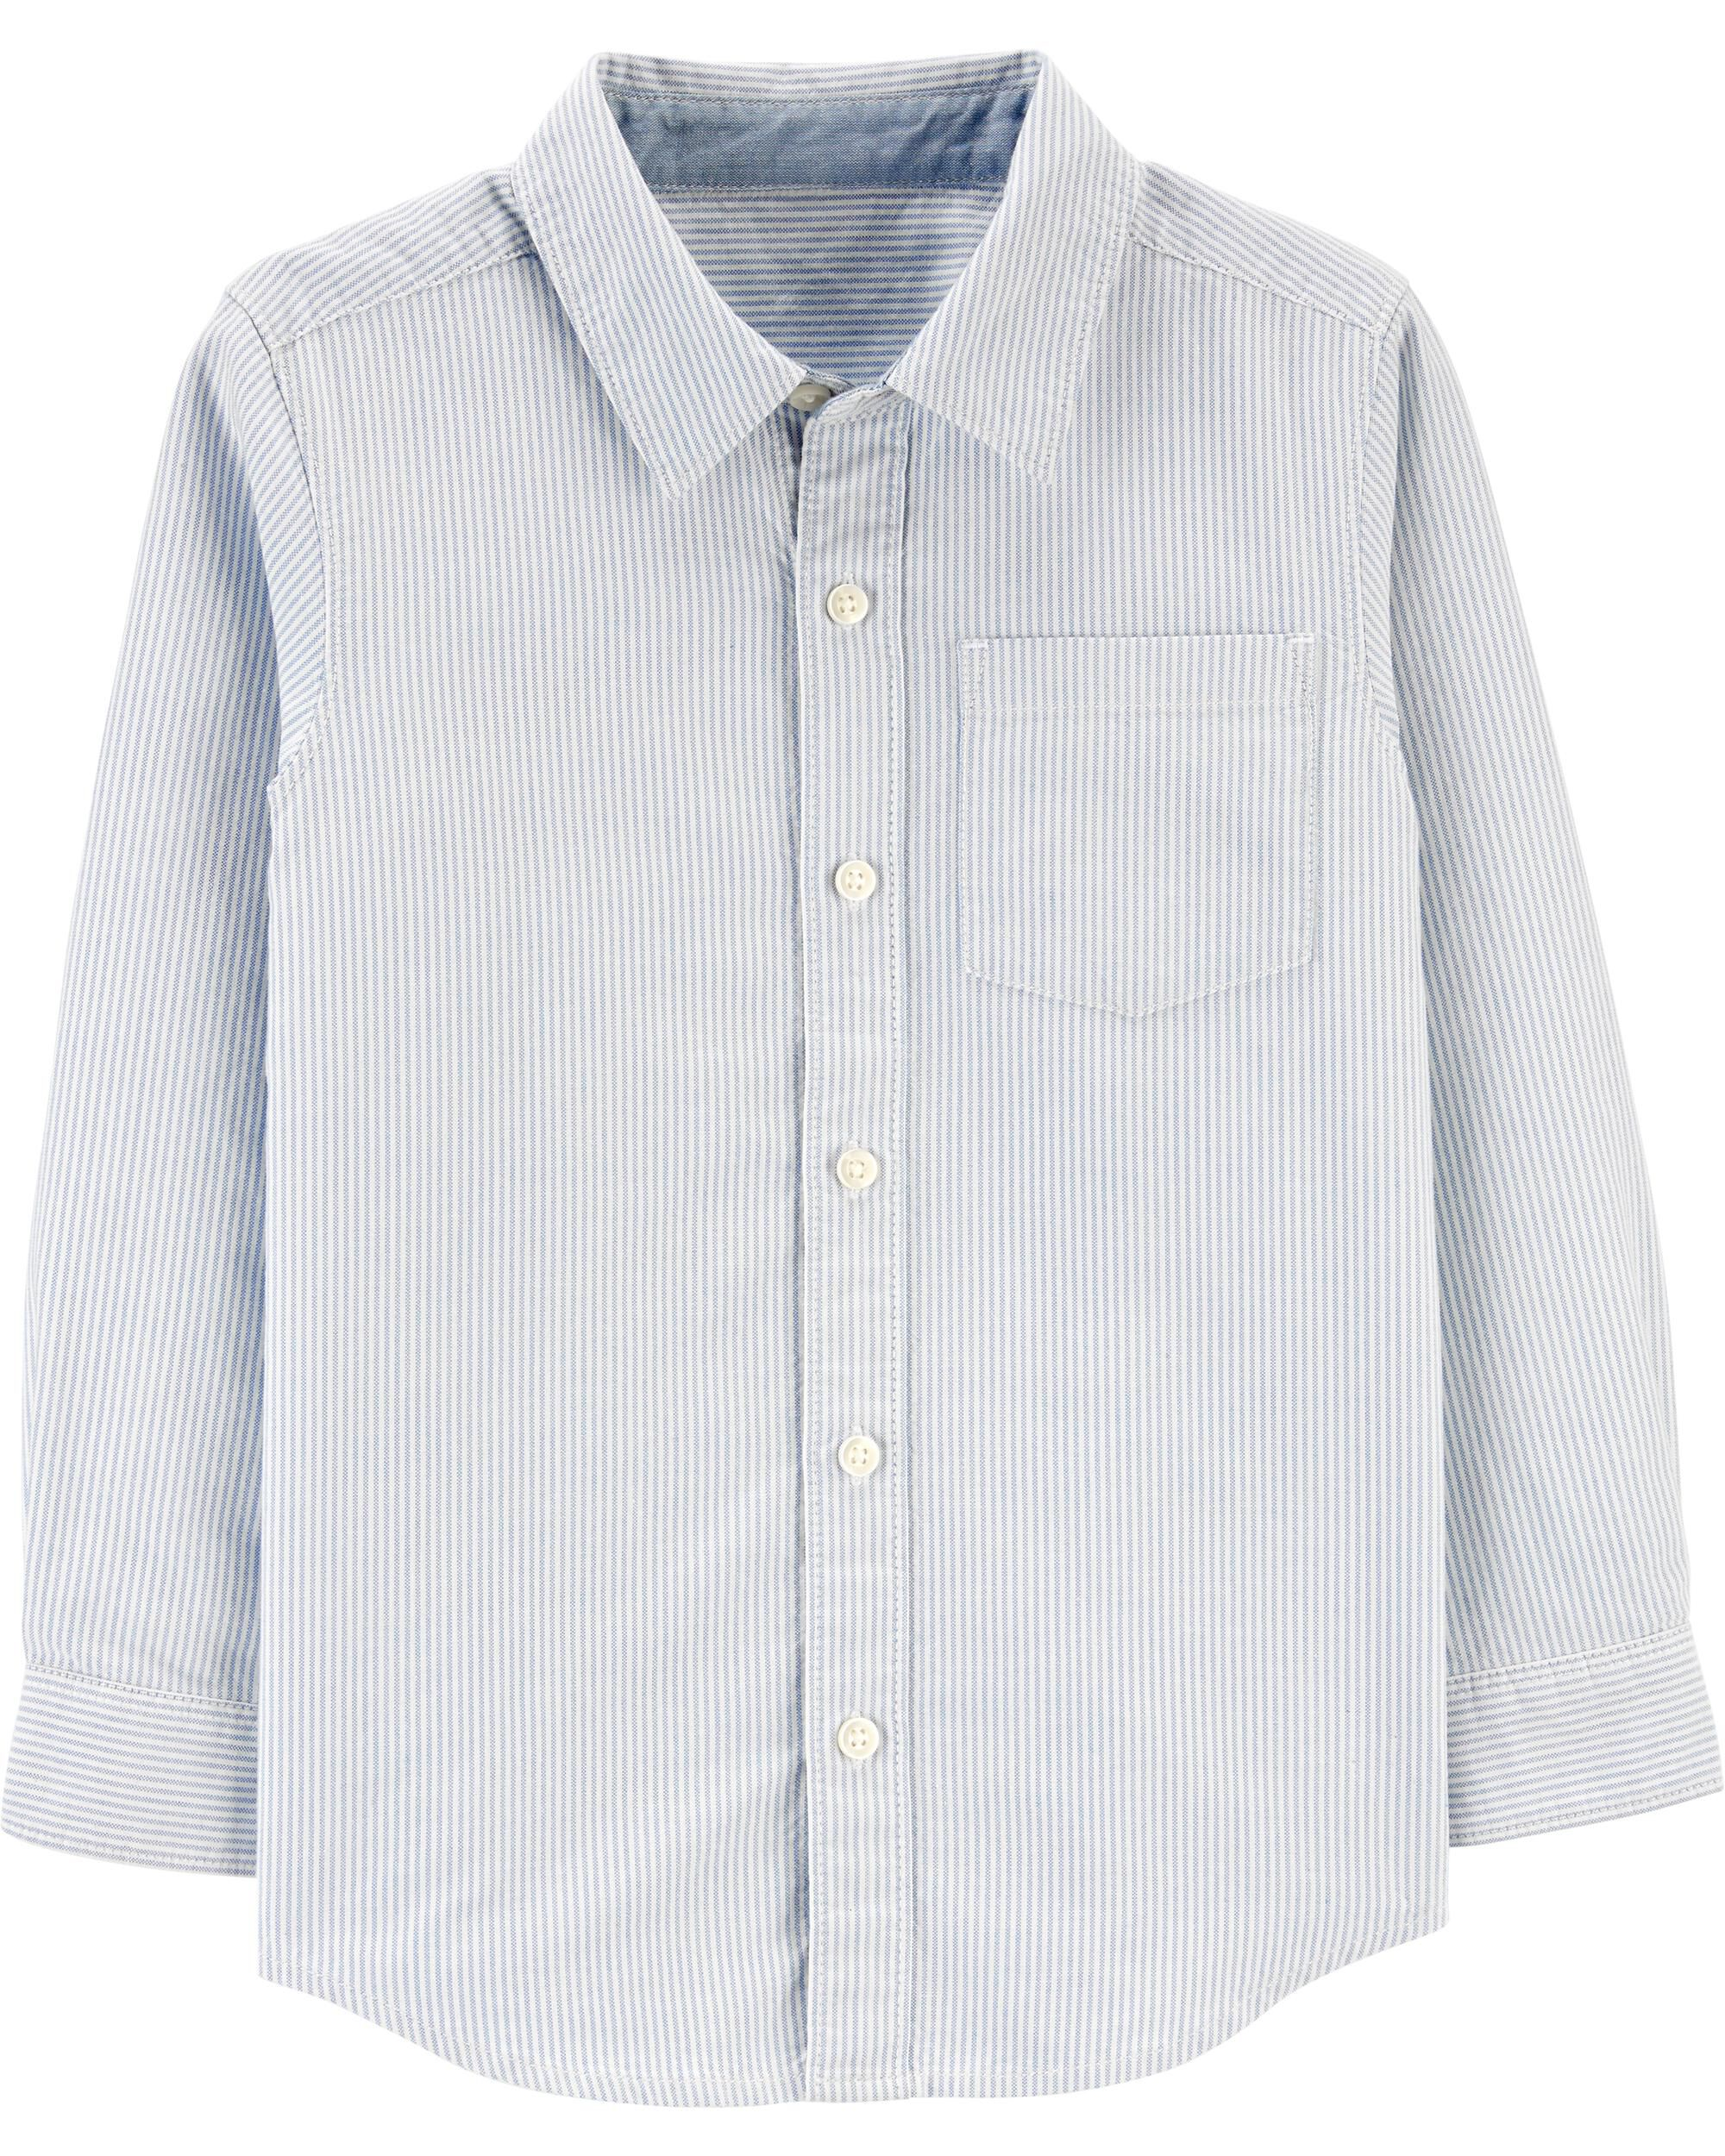 *CLEARANCE* Striped Oxford Button-Front Shirt